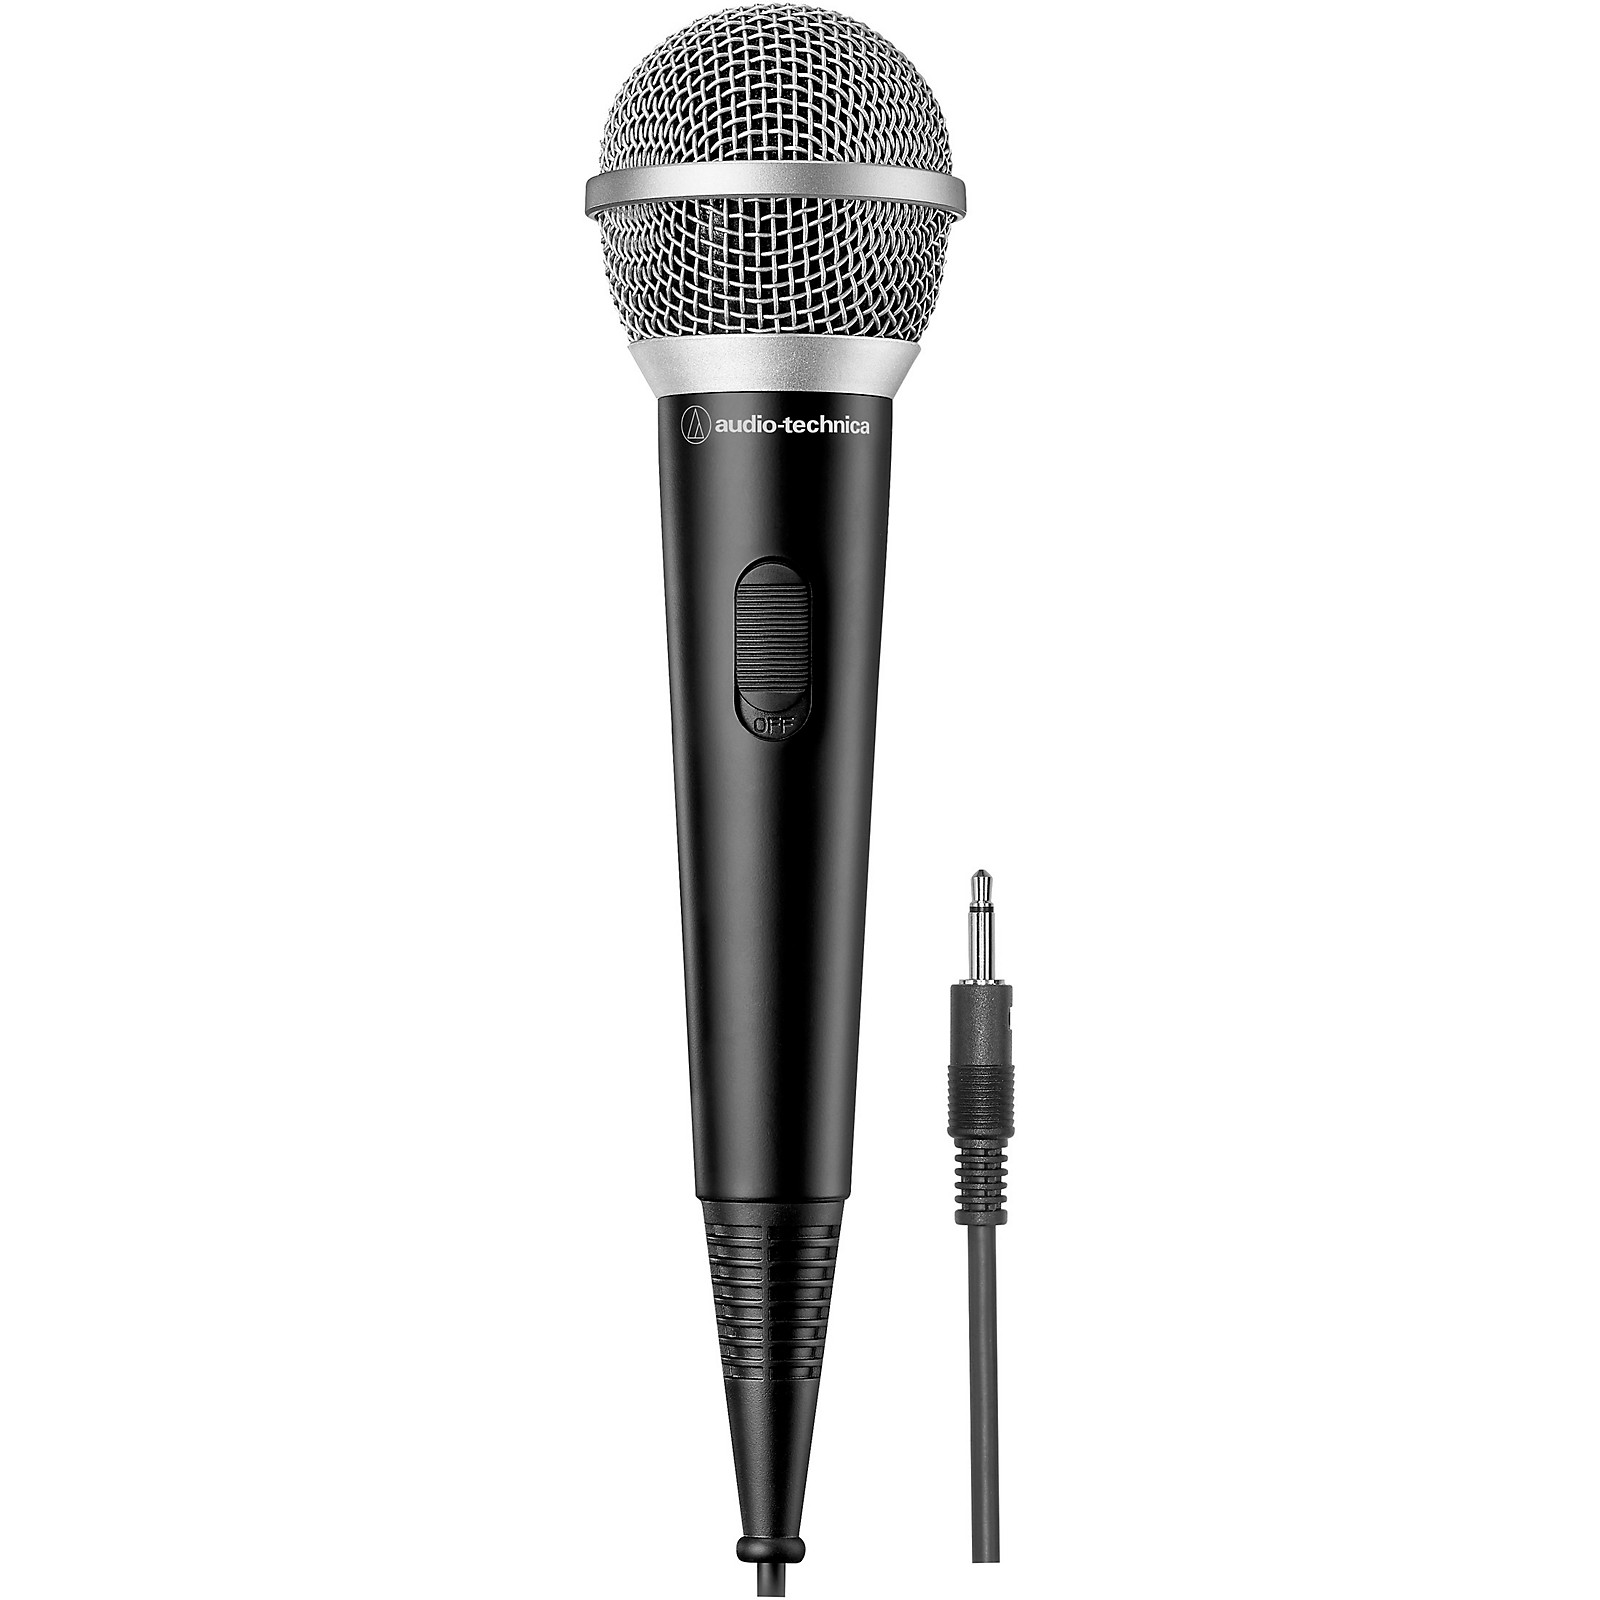 Audio-Technica ATR1200X Unidirectional Dynamic Vocal/Instrument Microphone